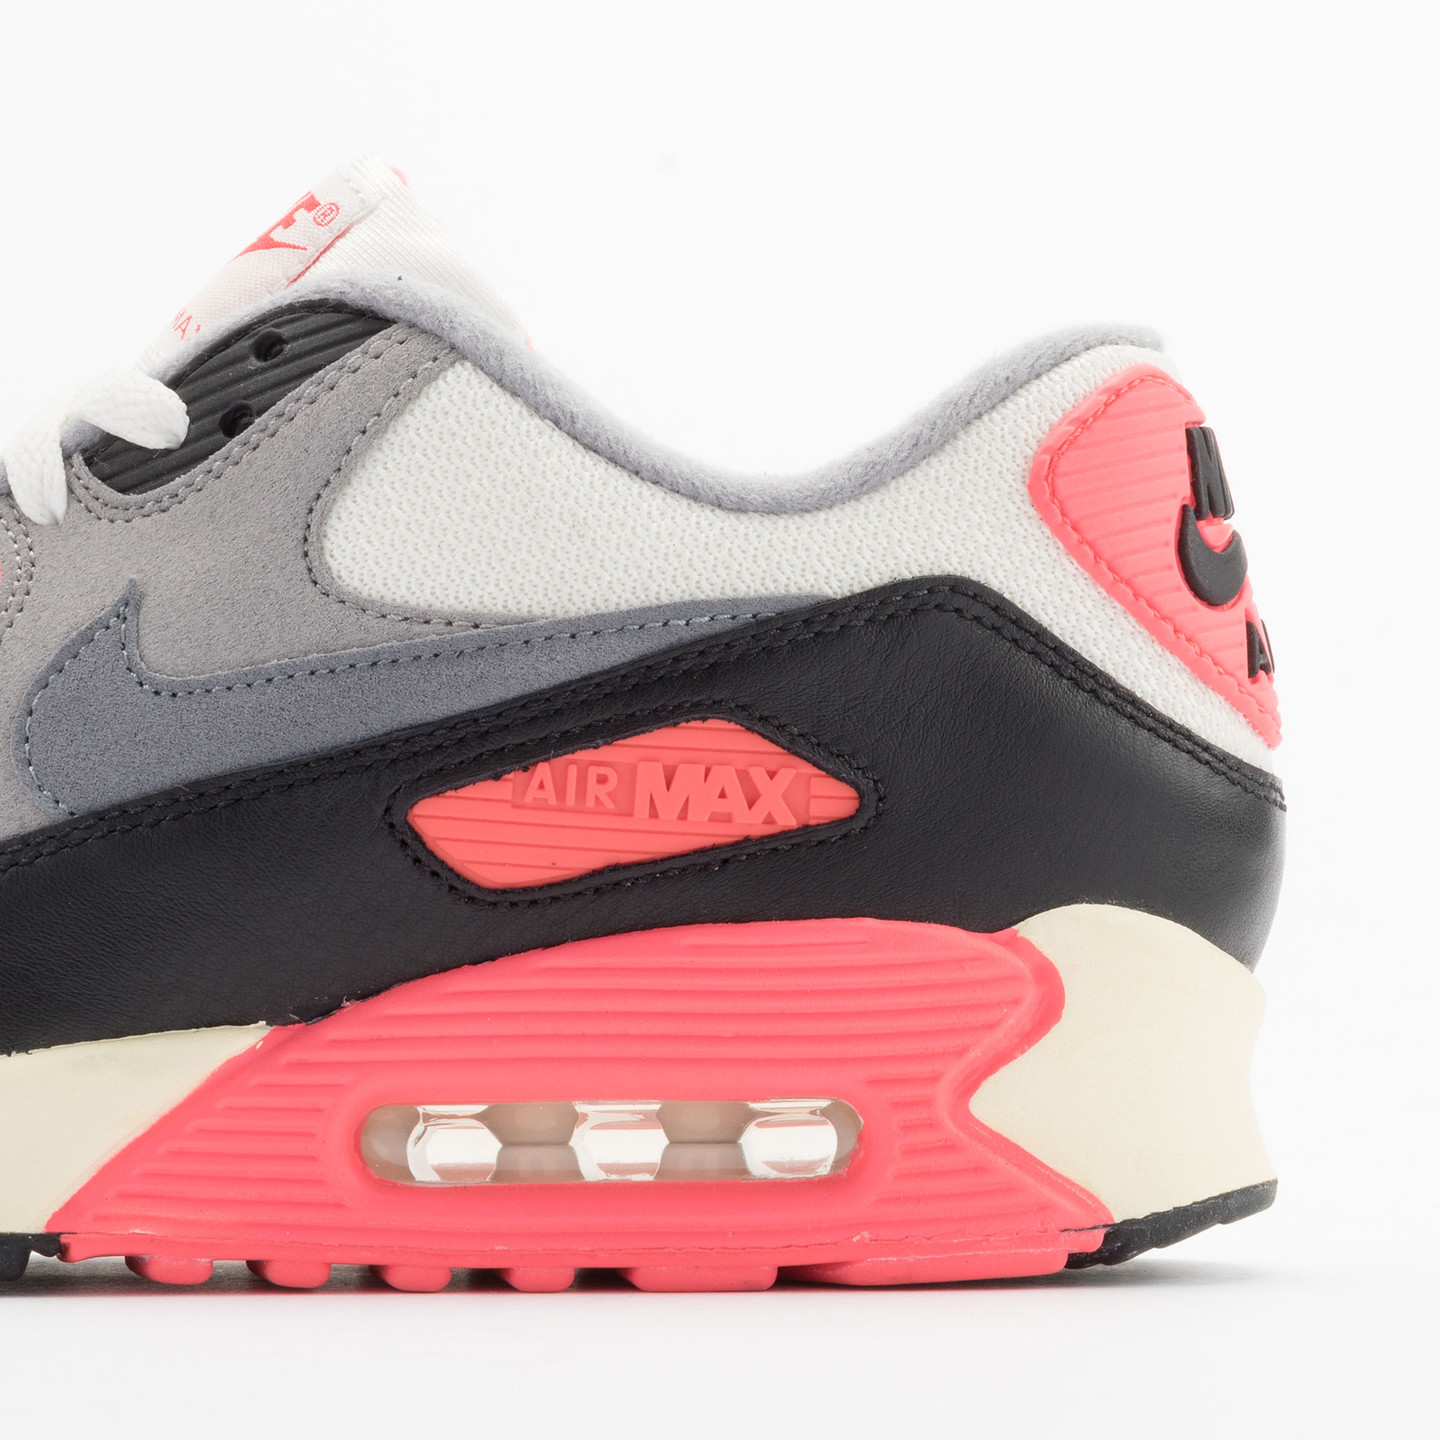 Nike Air Max 90 OG Vintage Infrared Sail/Cool Grey-Mdm Grey-Infrrd 543361-161-38.5